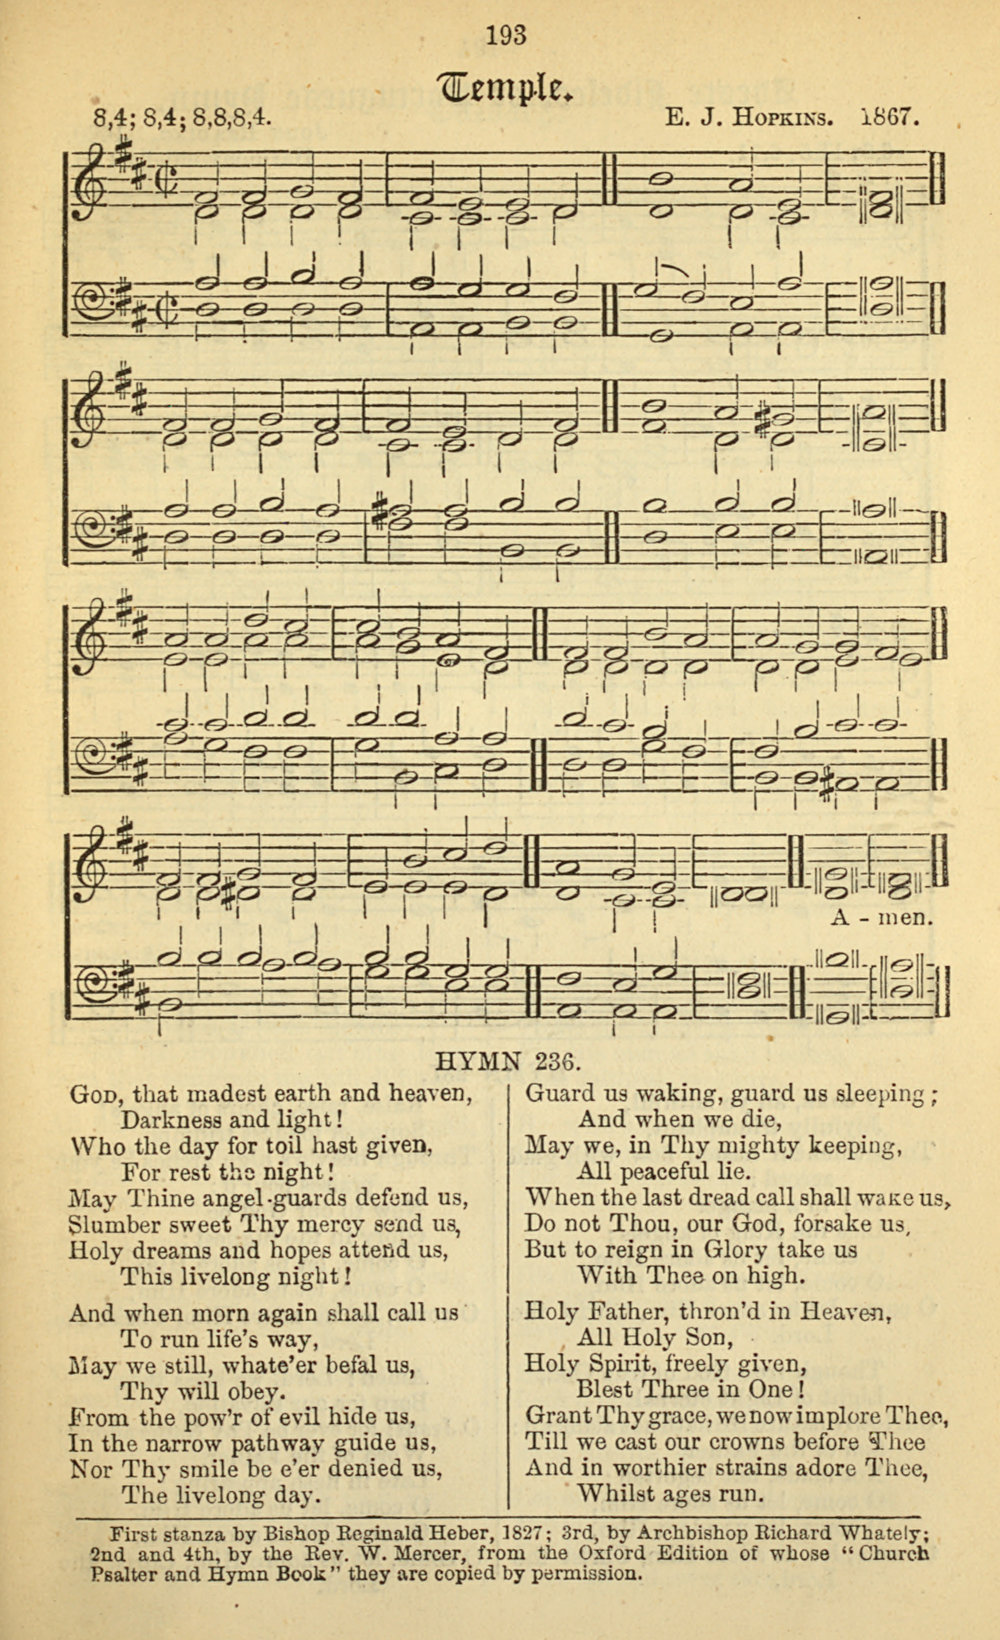 Fig. 7.  Edward J. Hopkins,  Temple Church Choral Service Book,  2nd ed. (London: Metzler & Co., 1869).